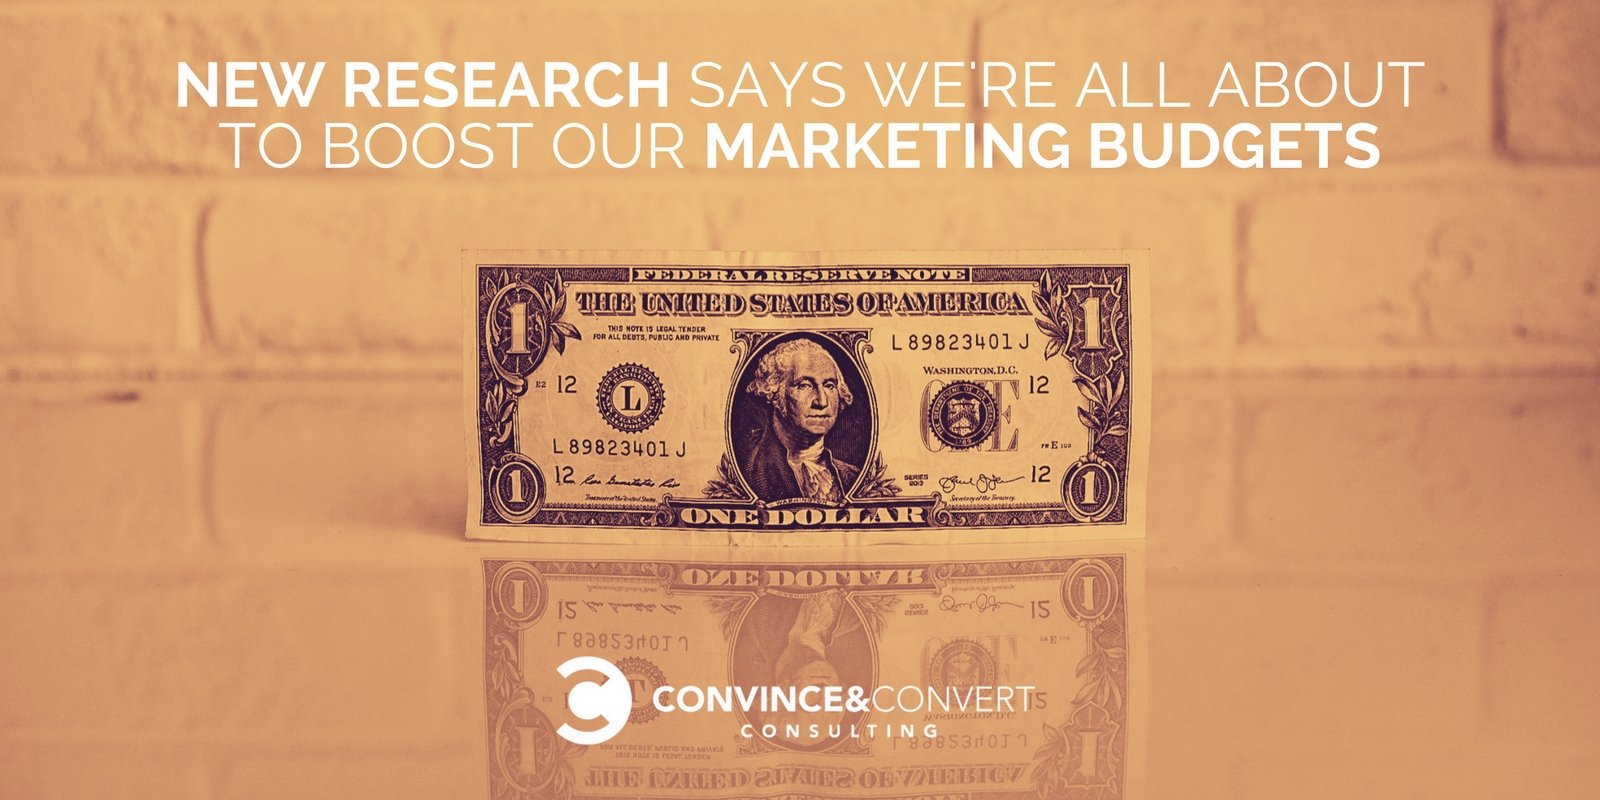 New Research Says We're All About to Boost Our Marketing Budgets